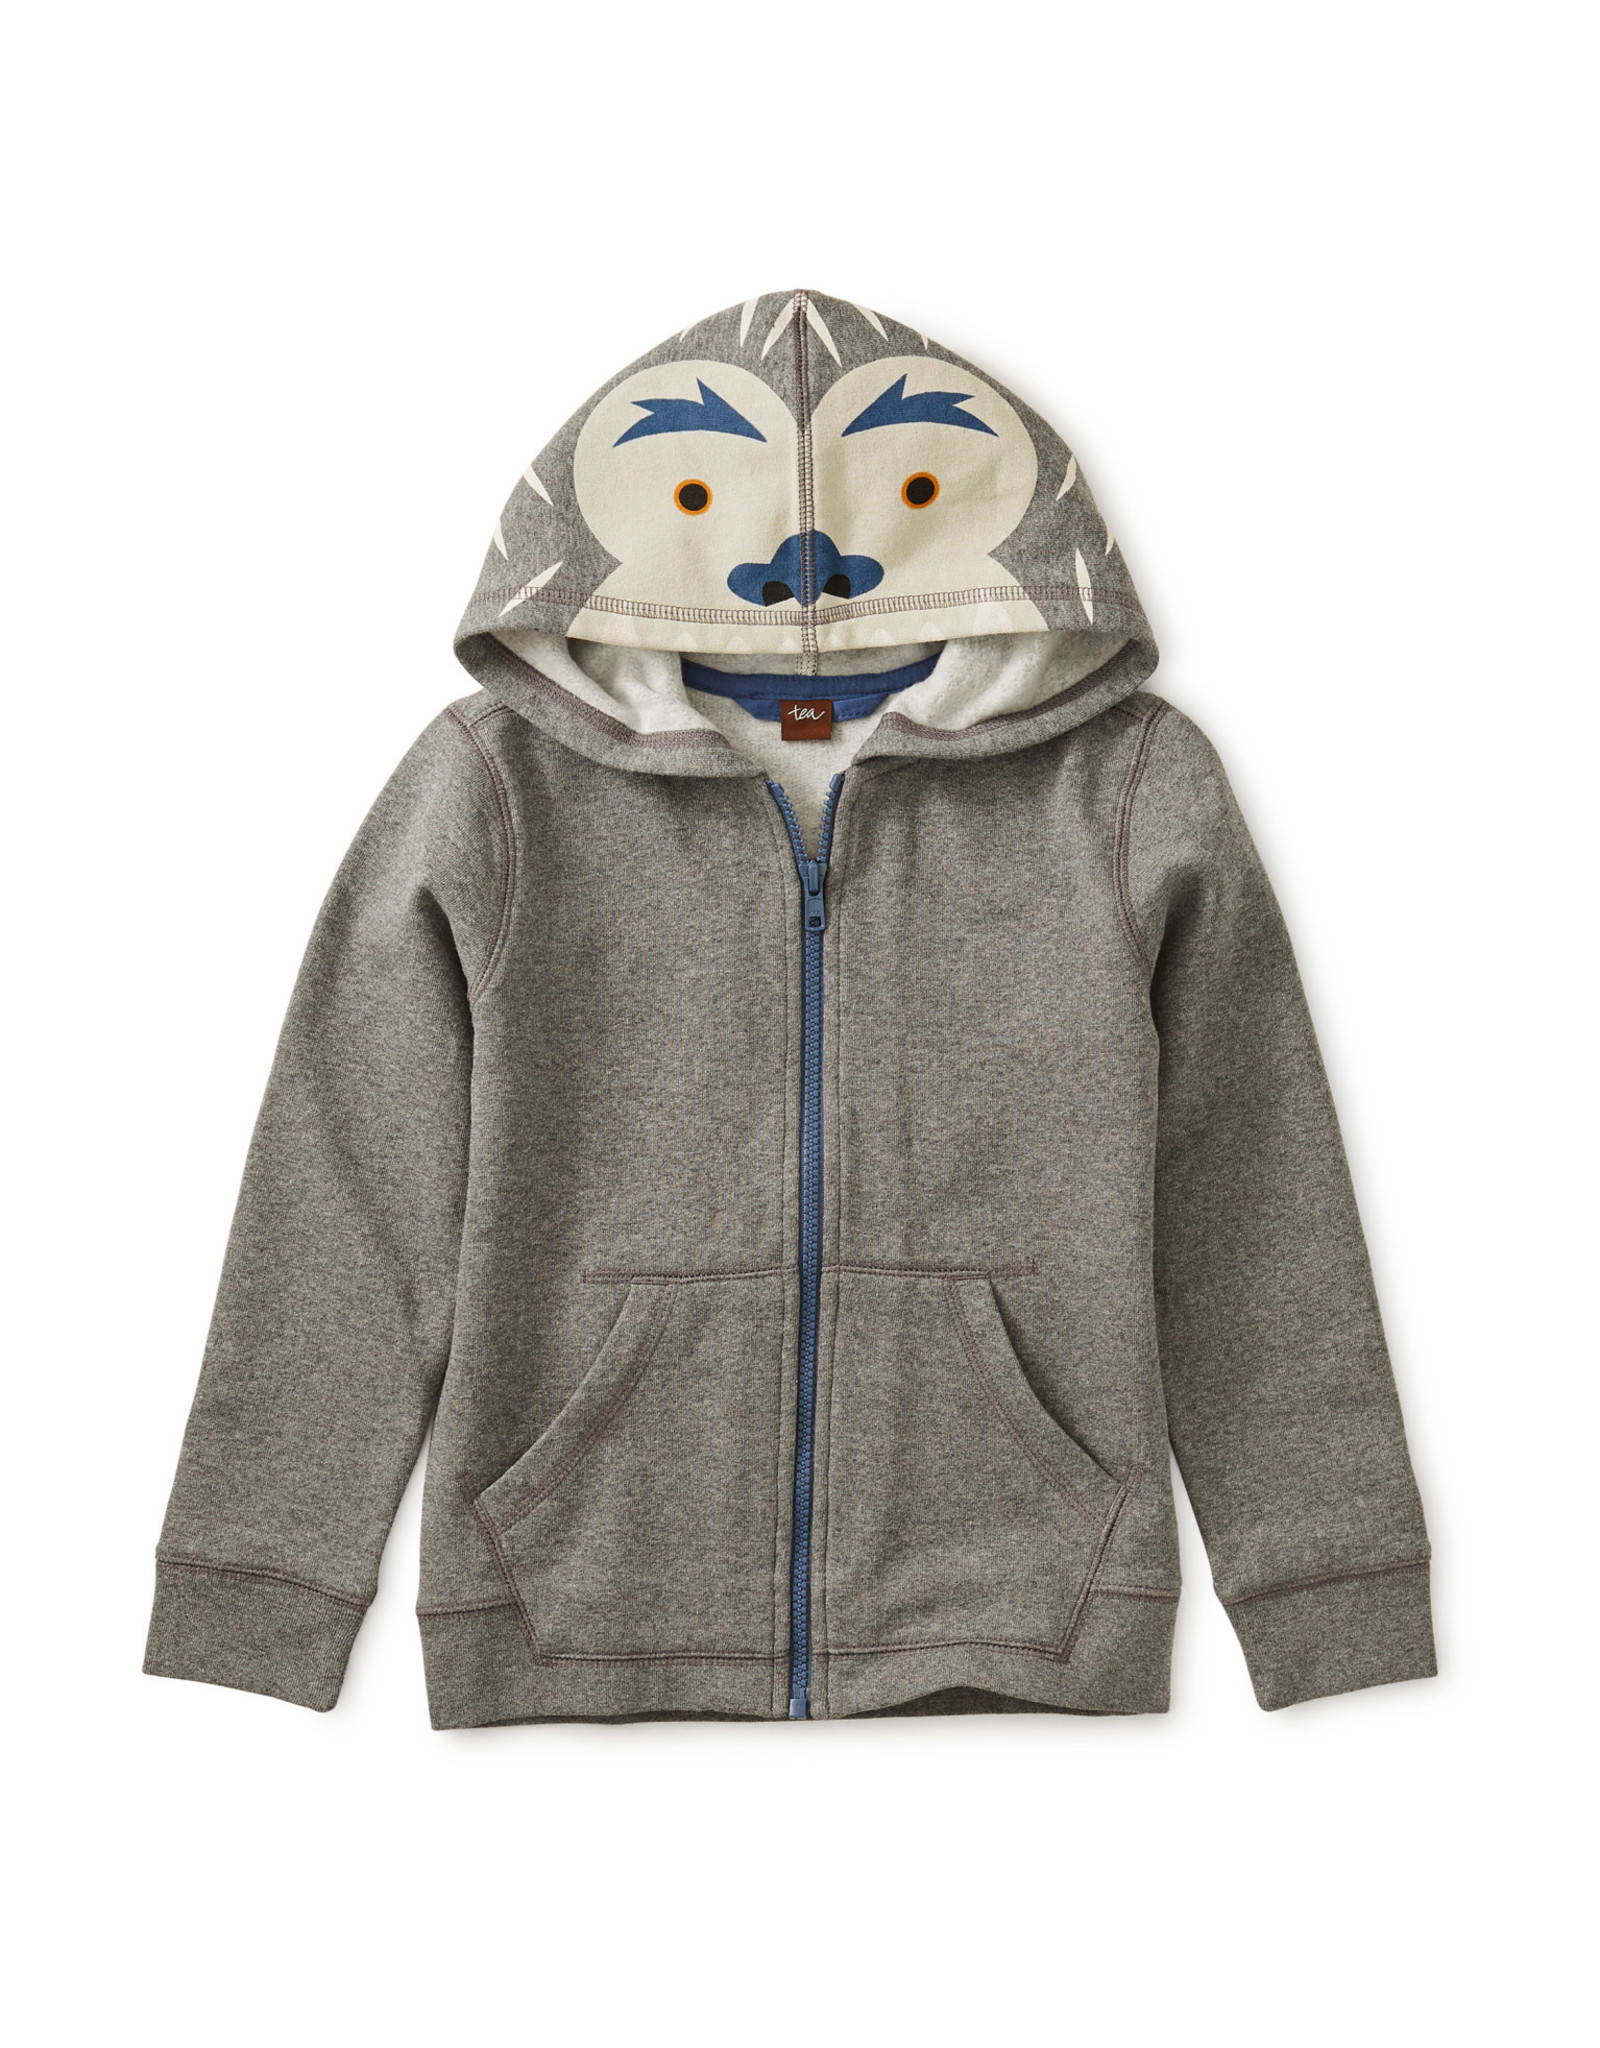 Yeti Zip Hoodie - Dark Grey Heather